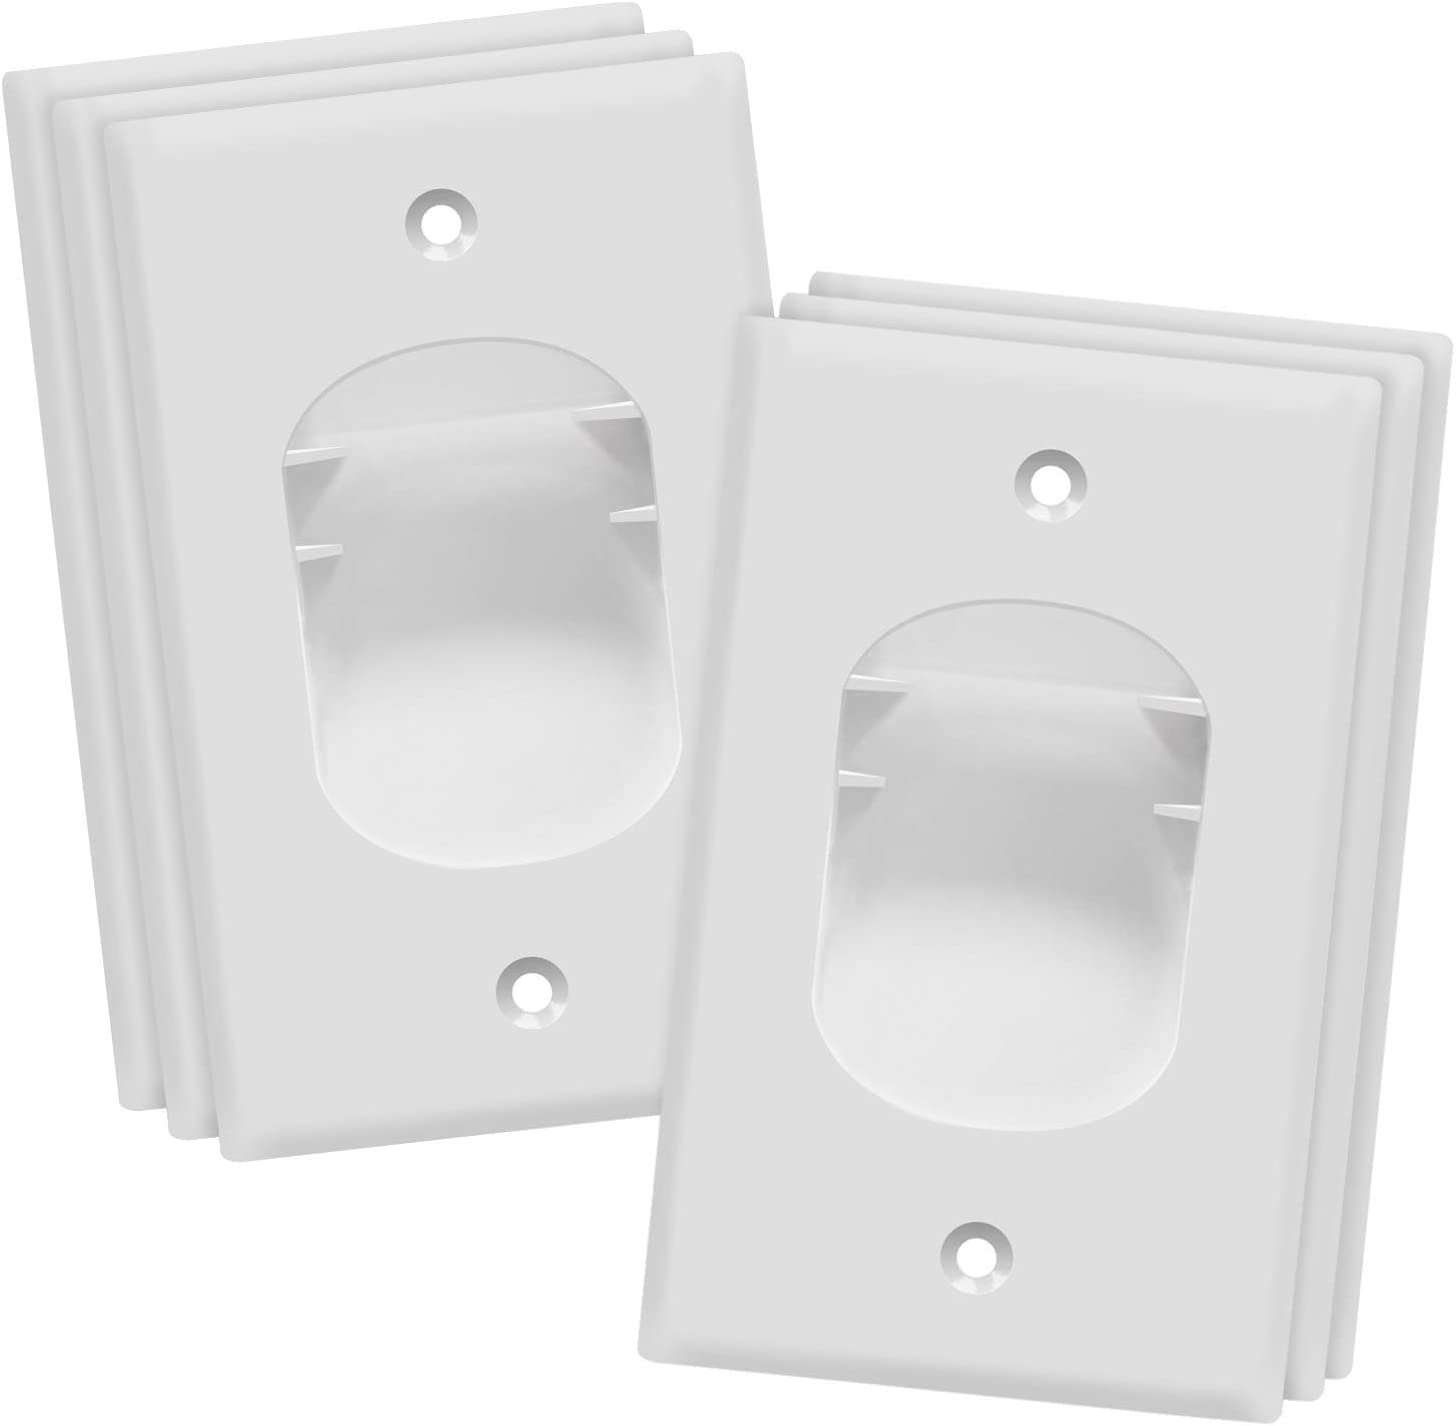 TOPGREENER Recessed Low Voltage Cable Wall Plate for Home Theaters, Size 1-Gang 4.50